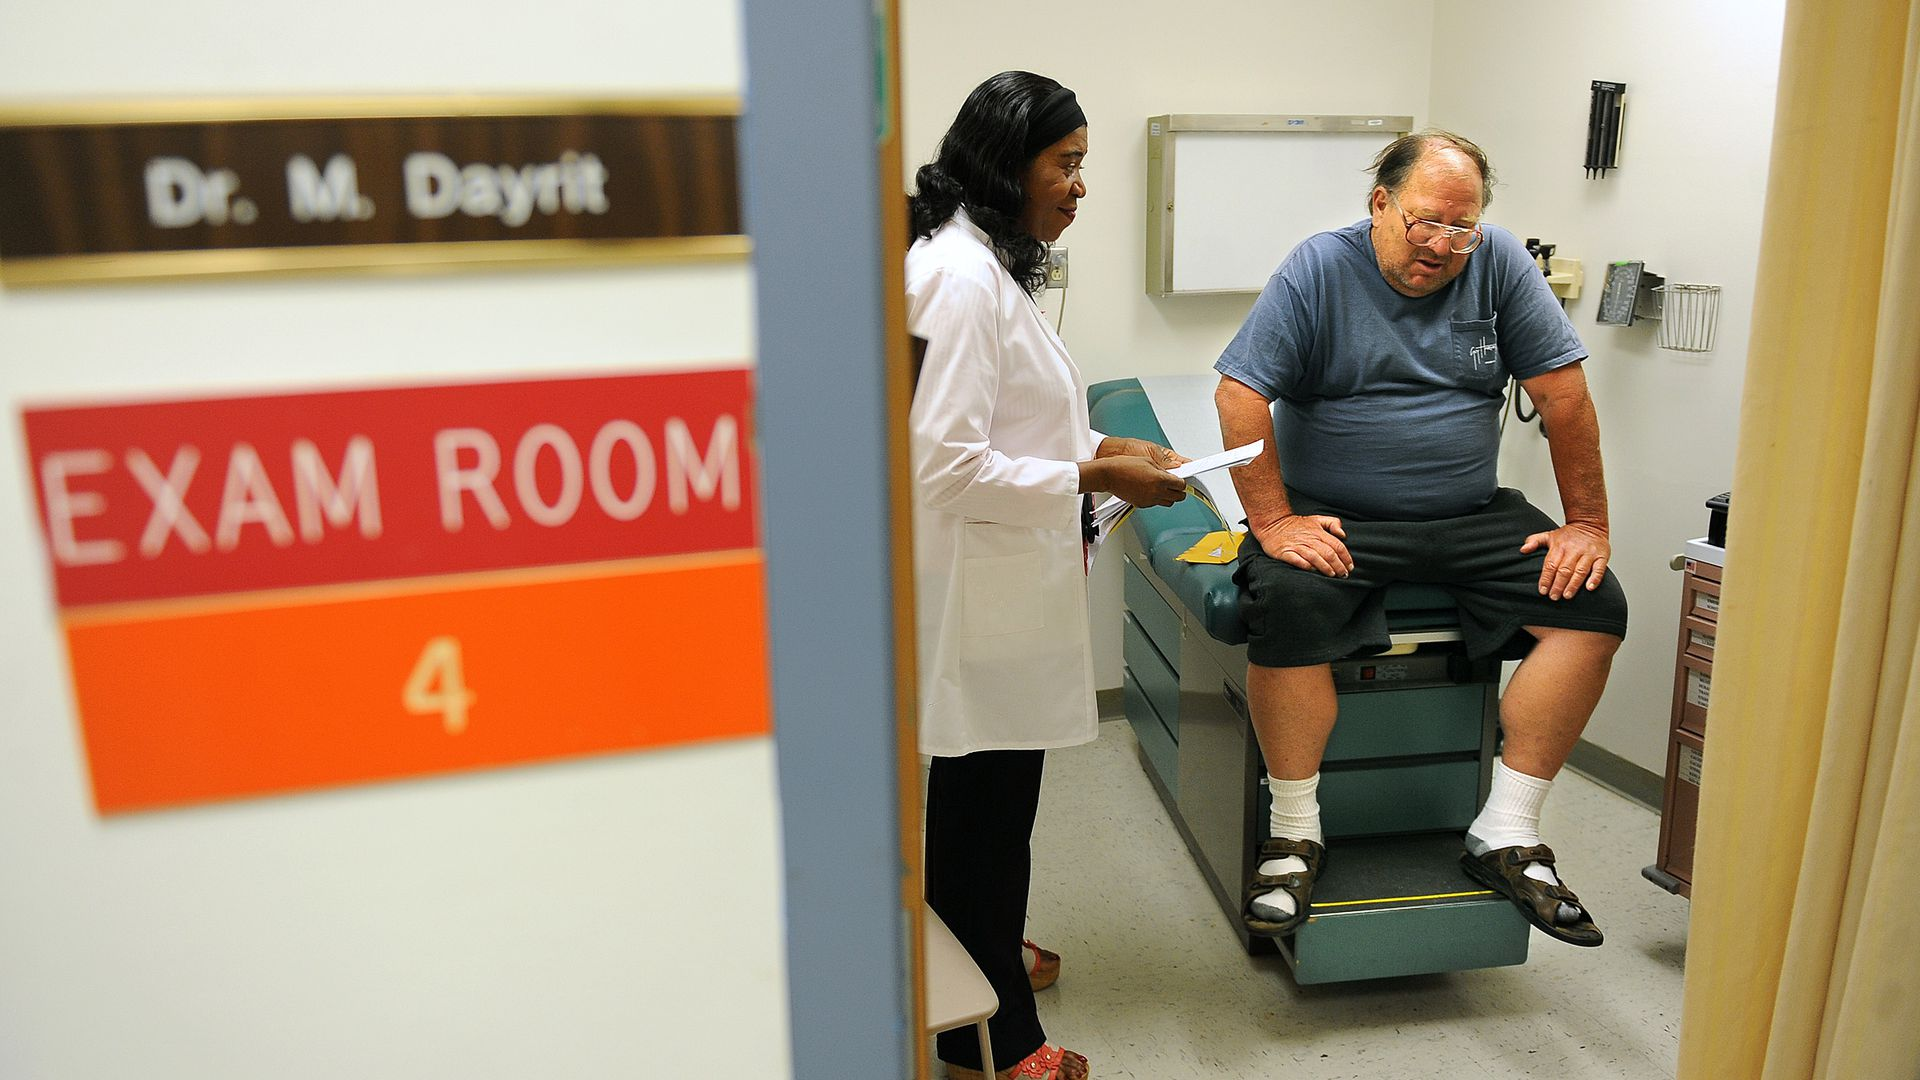 A doctor visits with a patient in an exam room